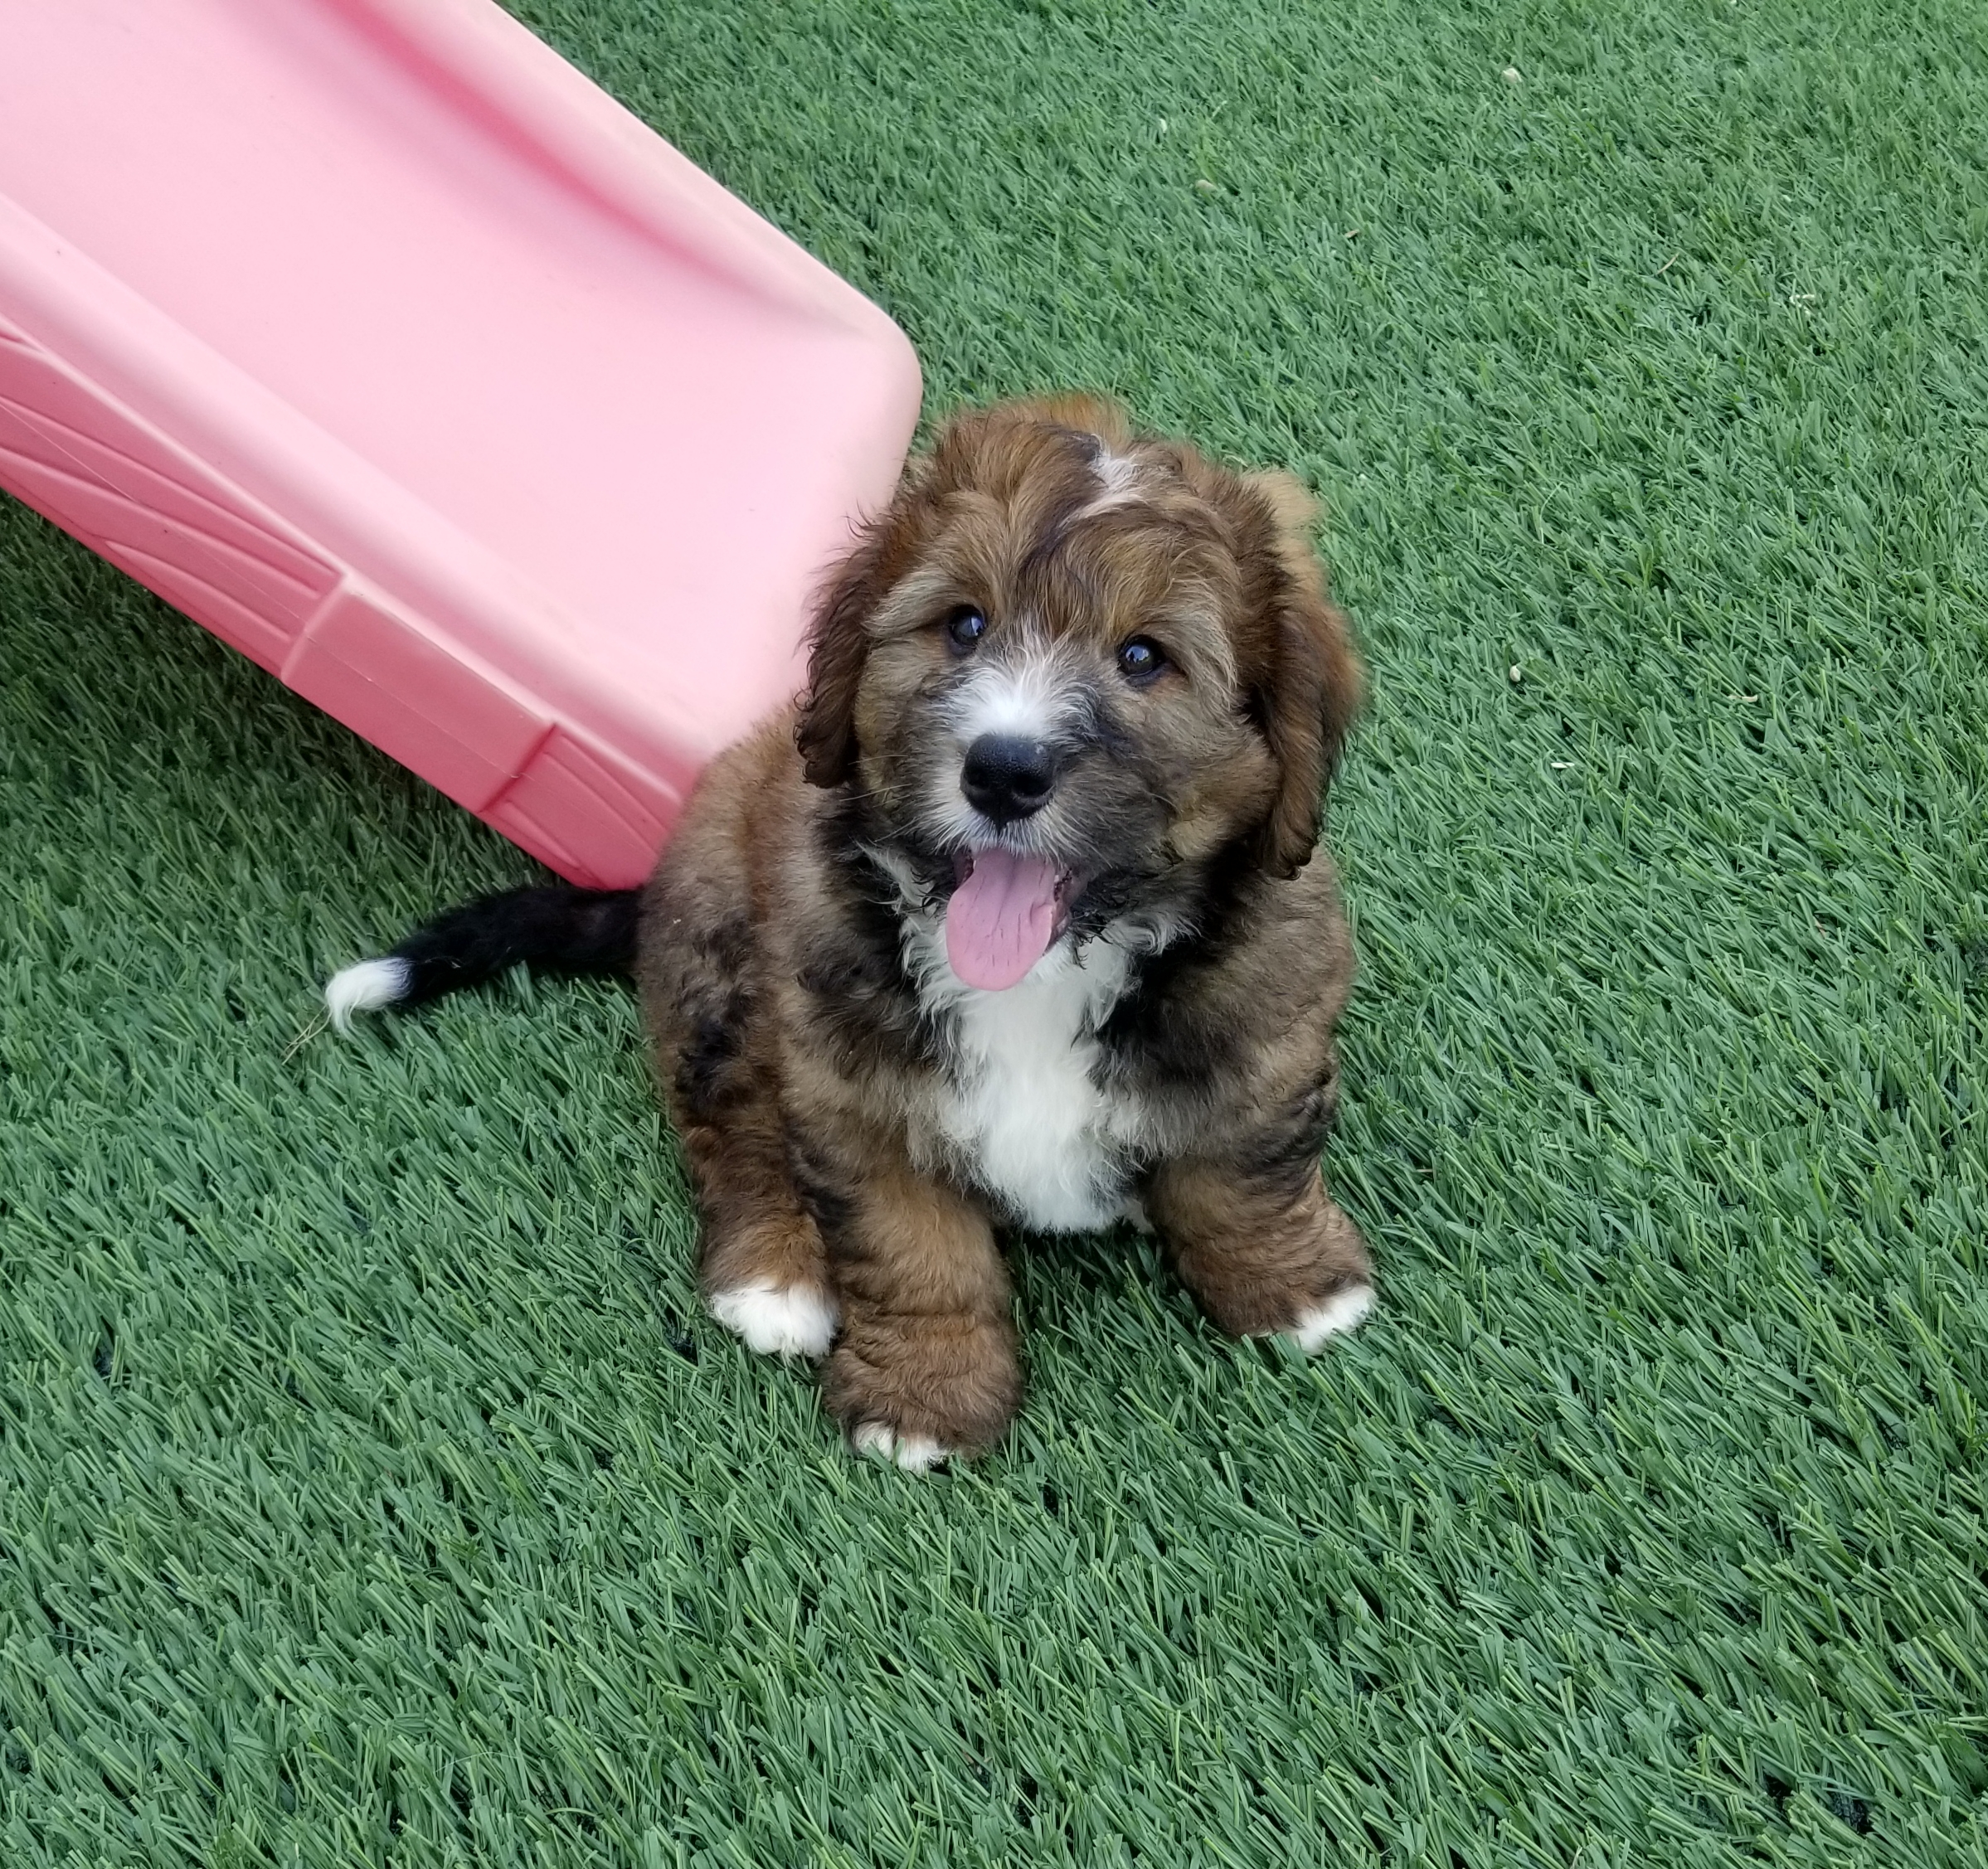 Chewie formerly Ike is living with Ben Dukleth and family in Texas.